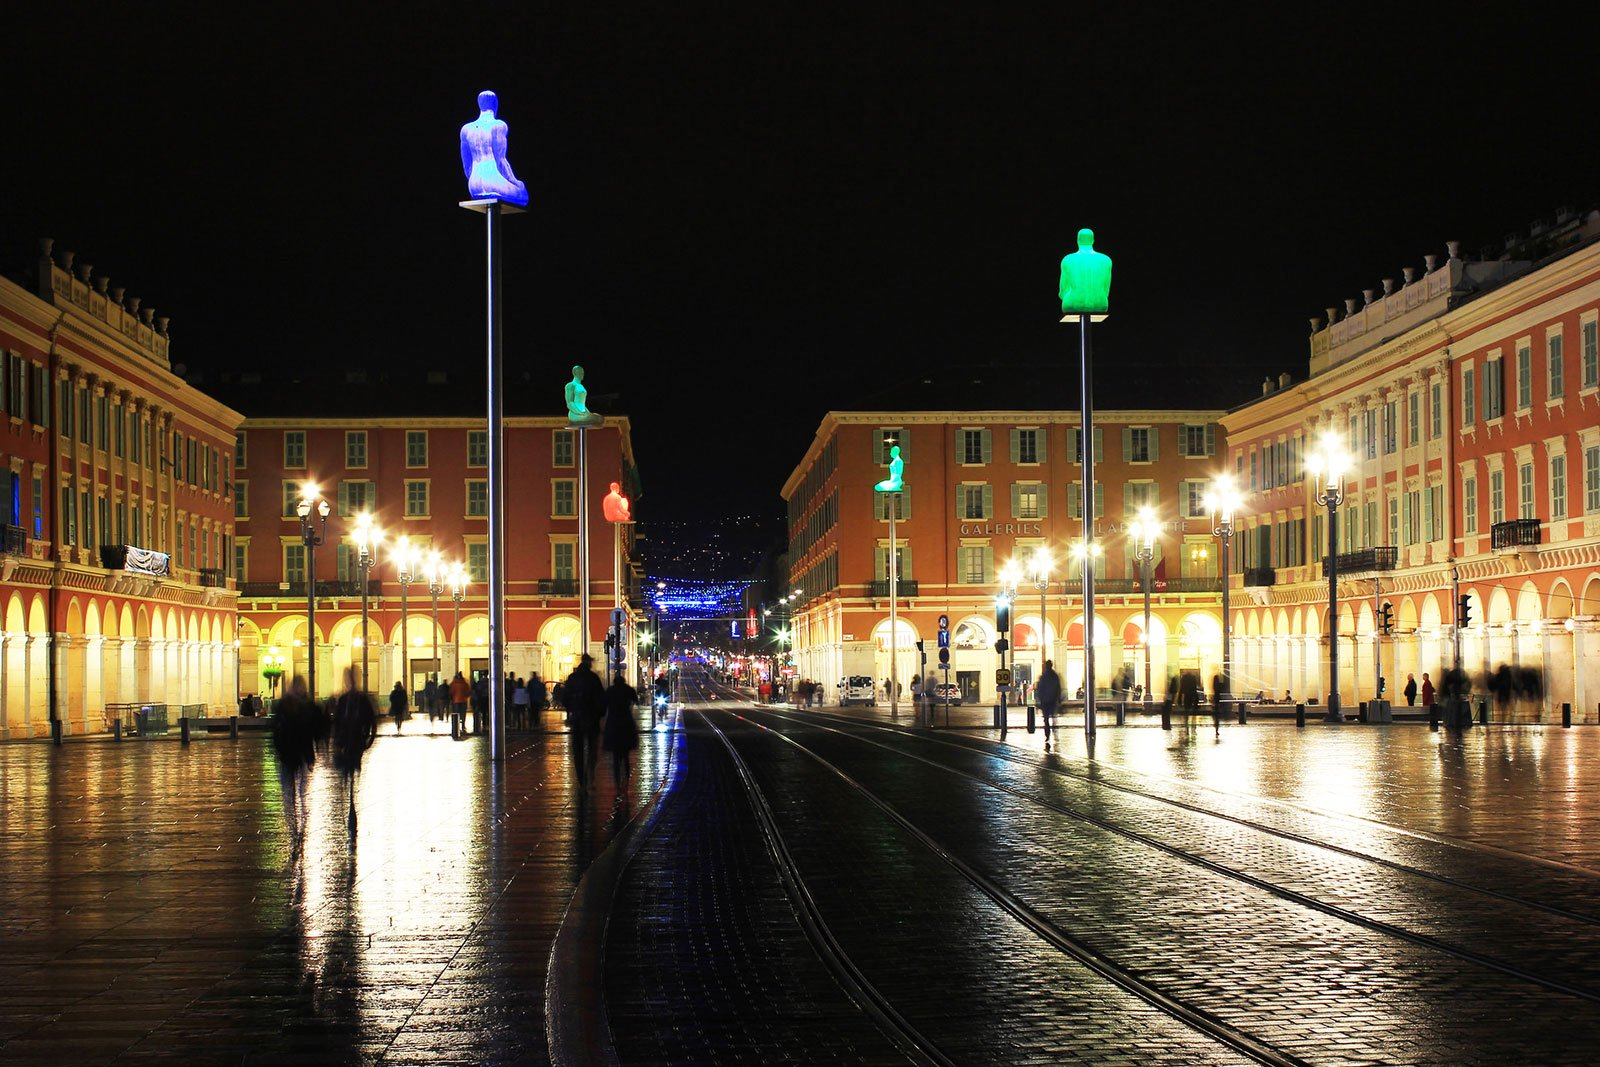 How to see the illuminated statues in Nice